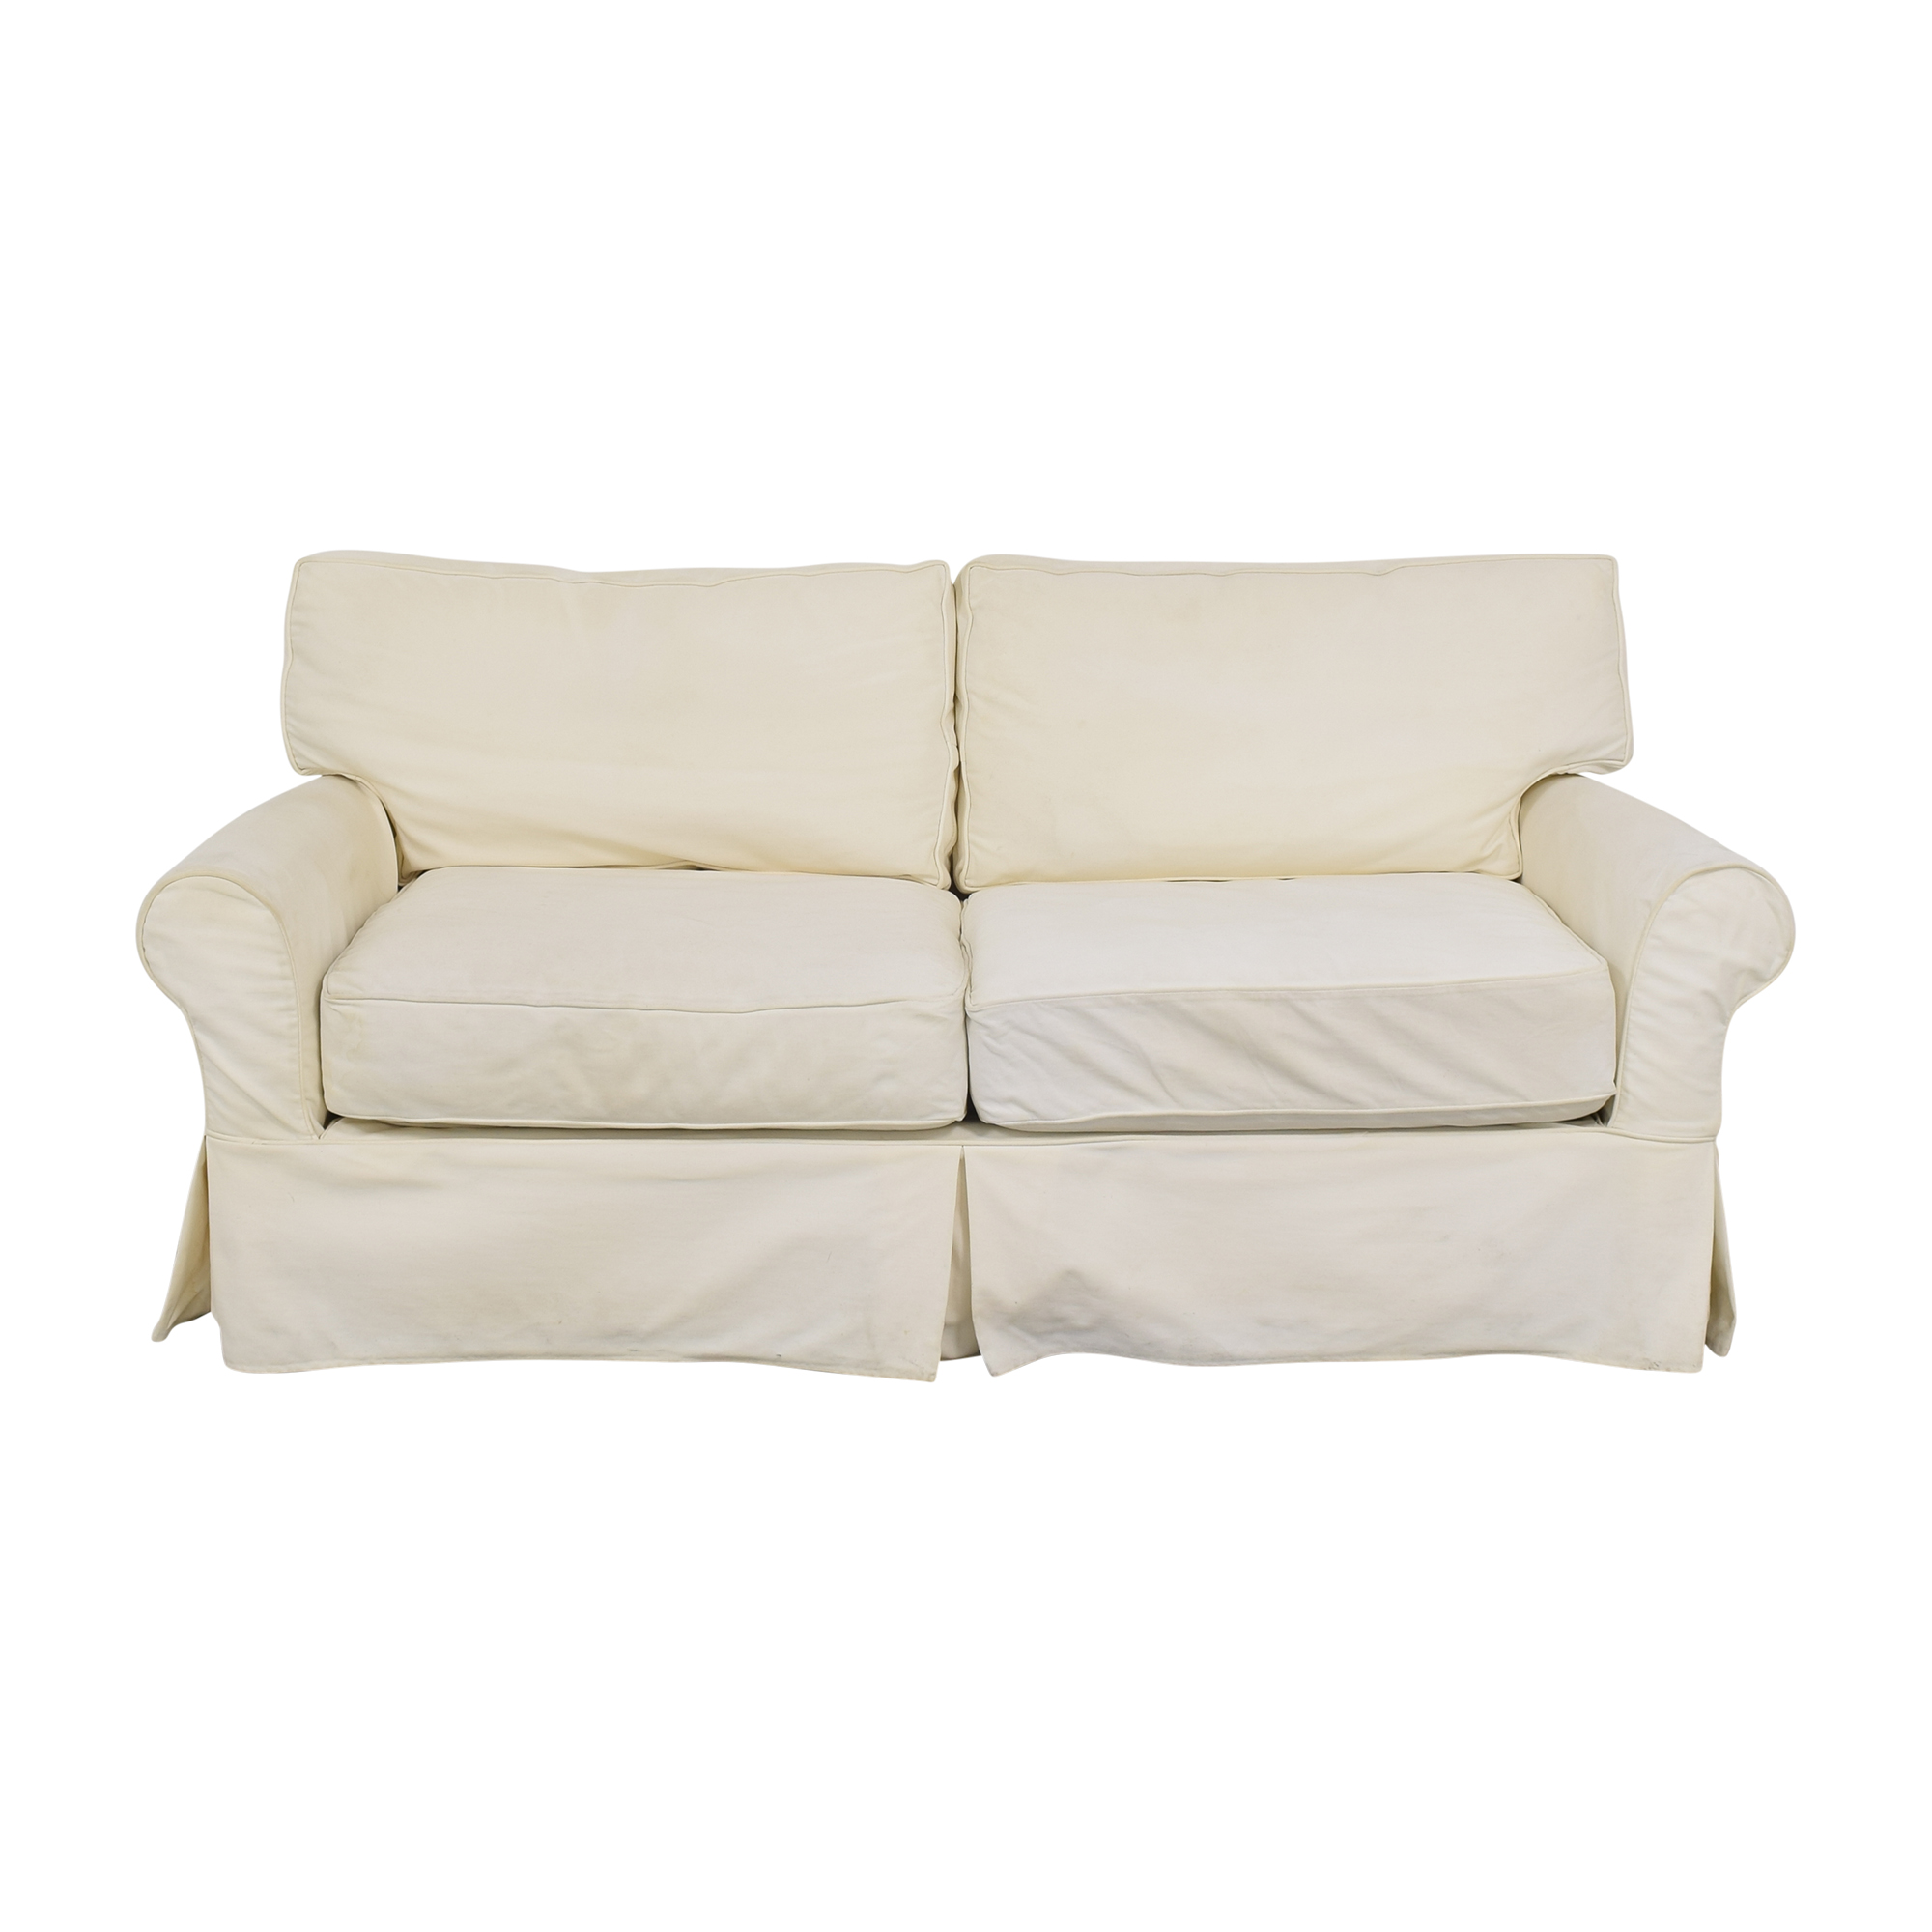 Crate & Barrel Crate & Barrel Bayside Apartment Sofa Sofas